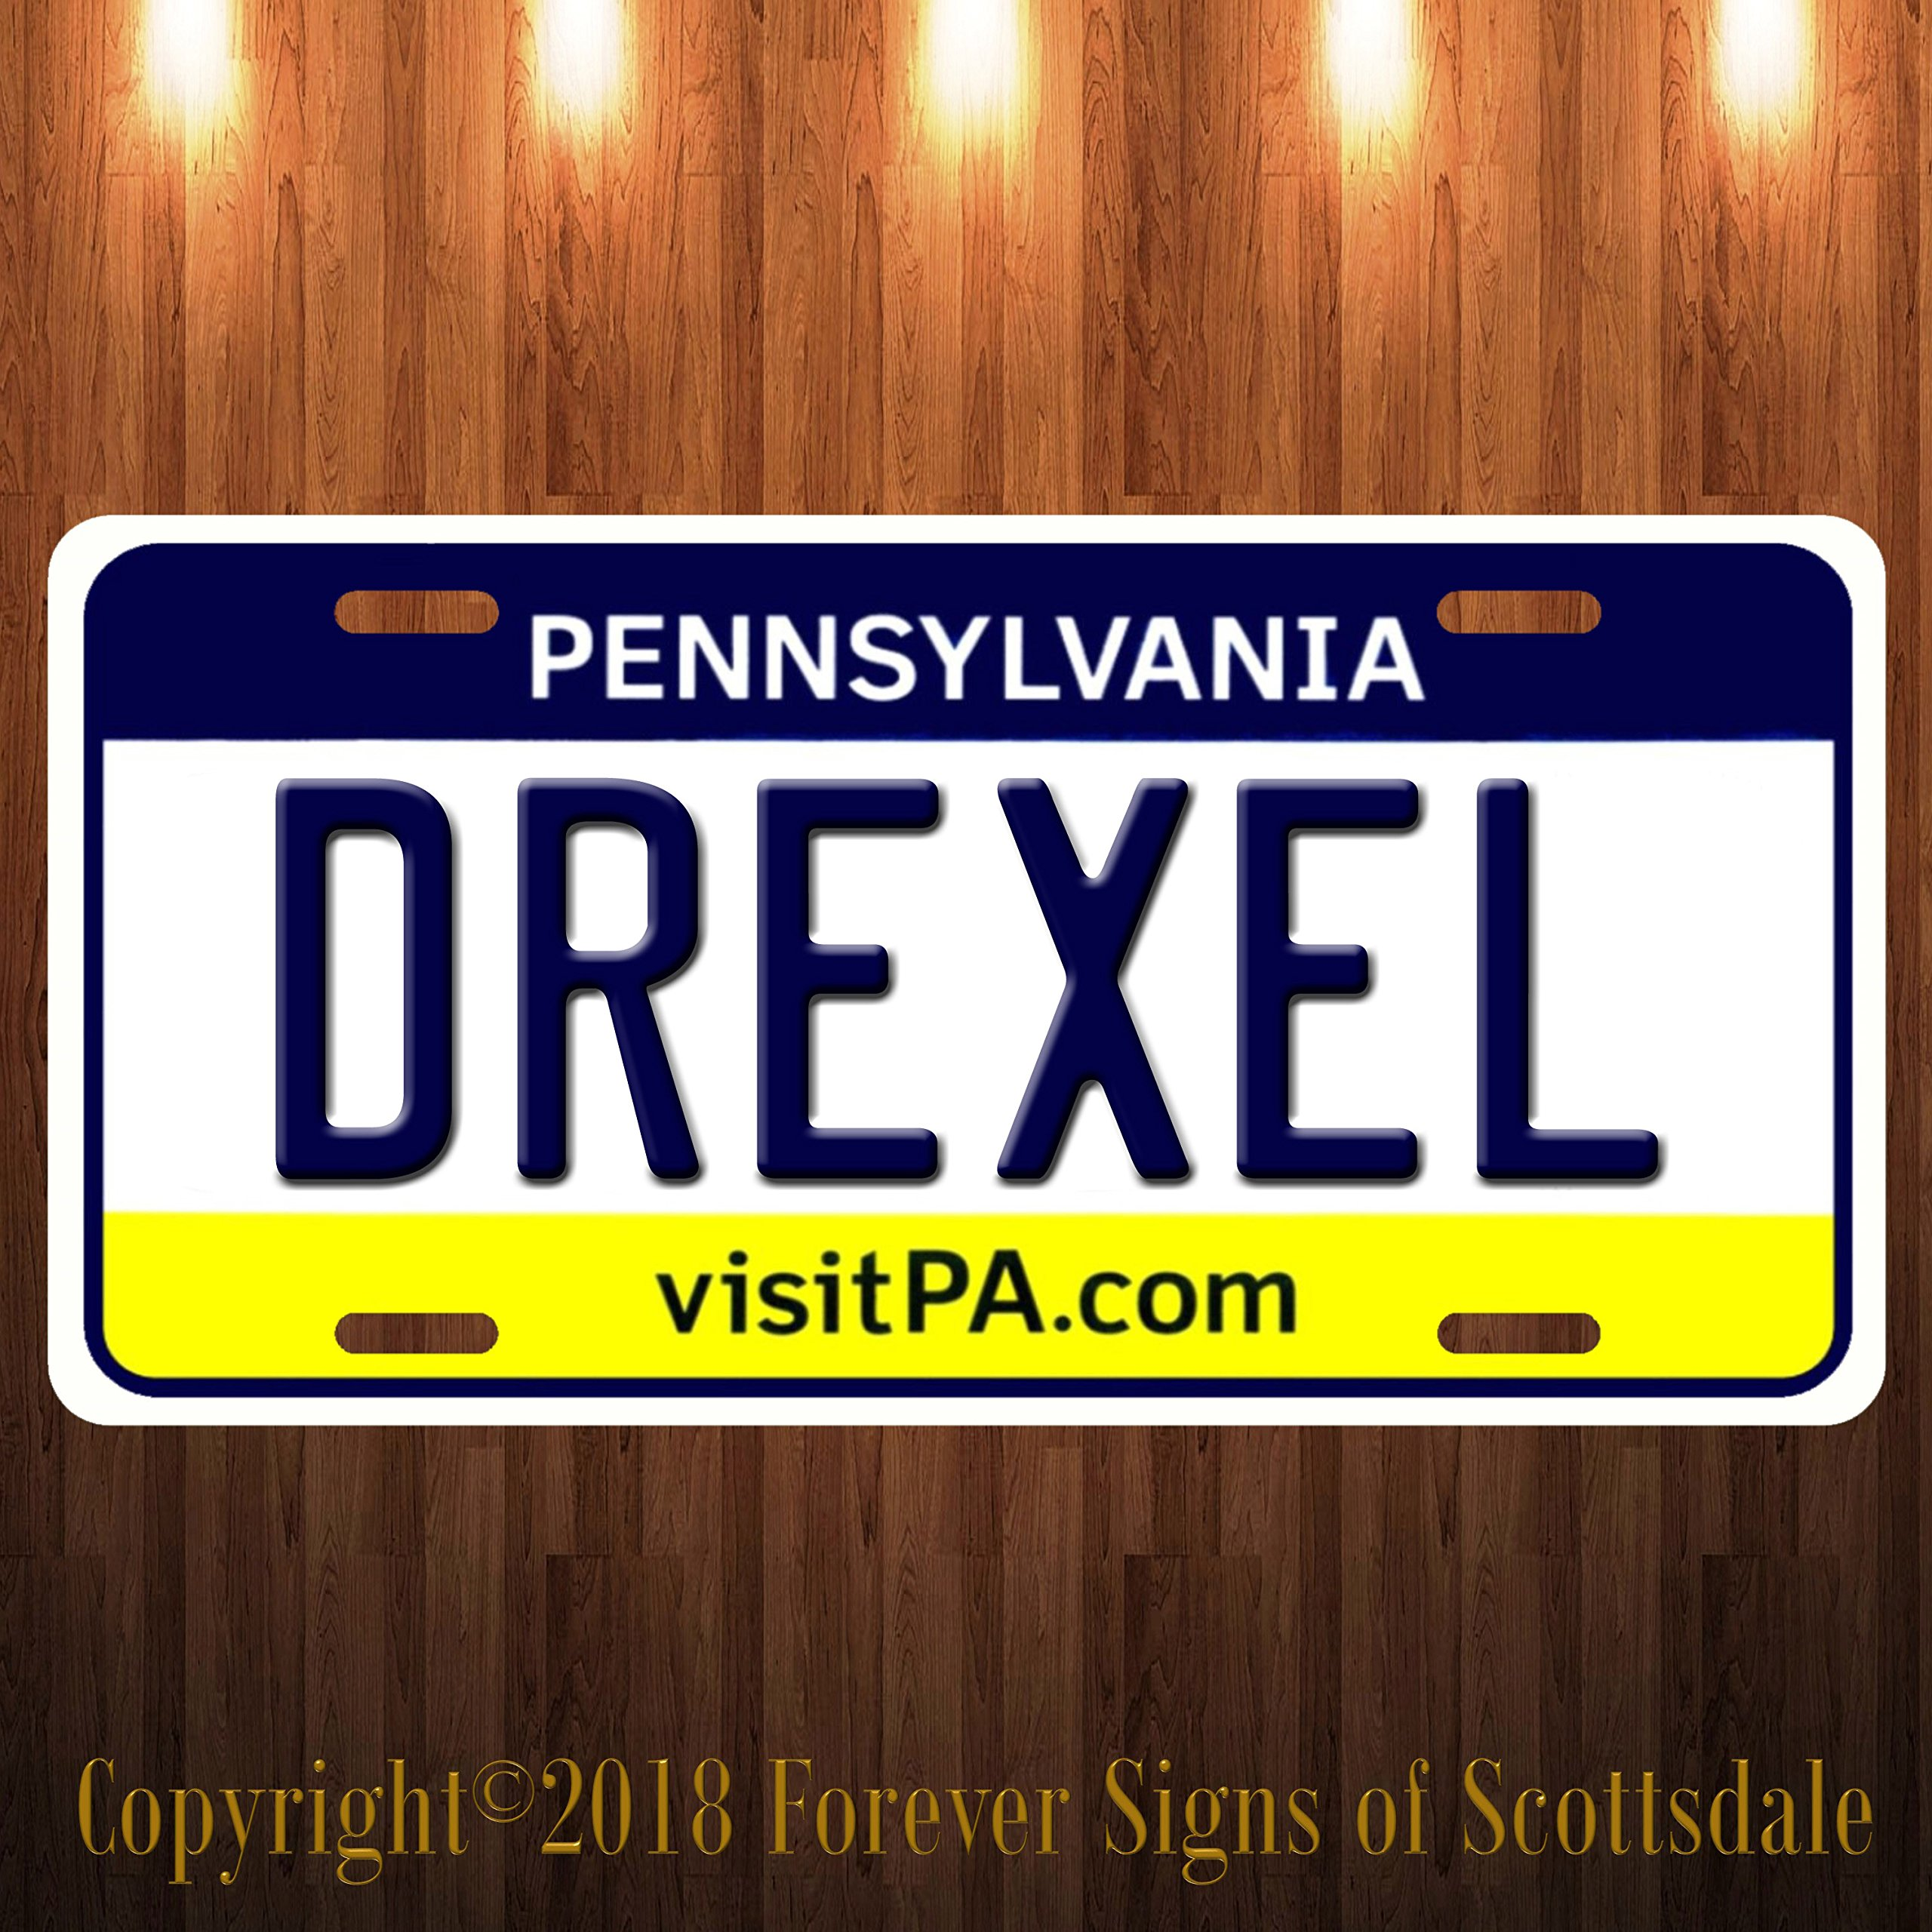 Drexel Pennsylvania City/College State Aluminum Vanity License Plate New